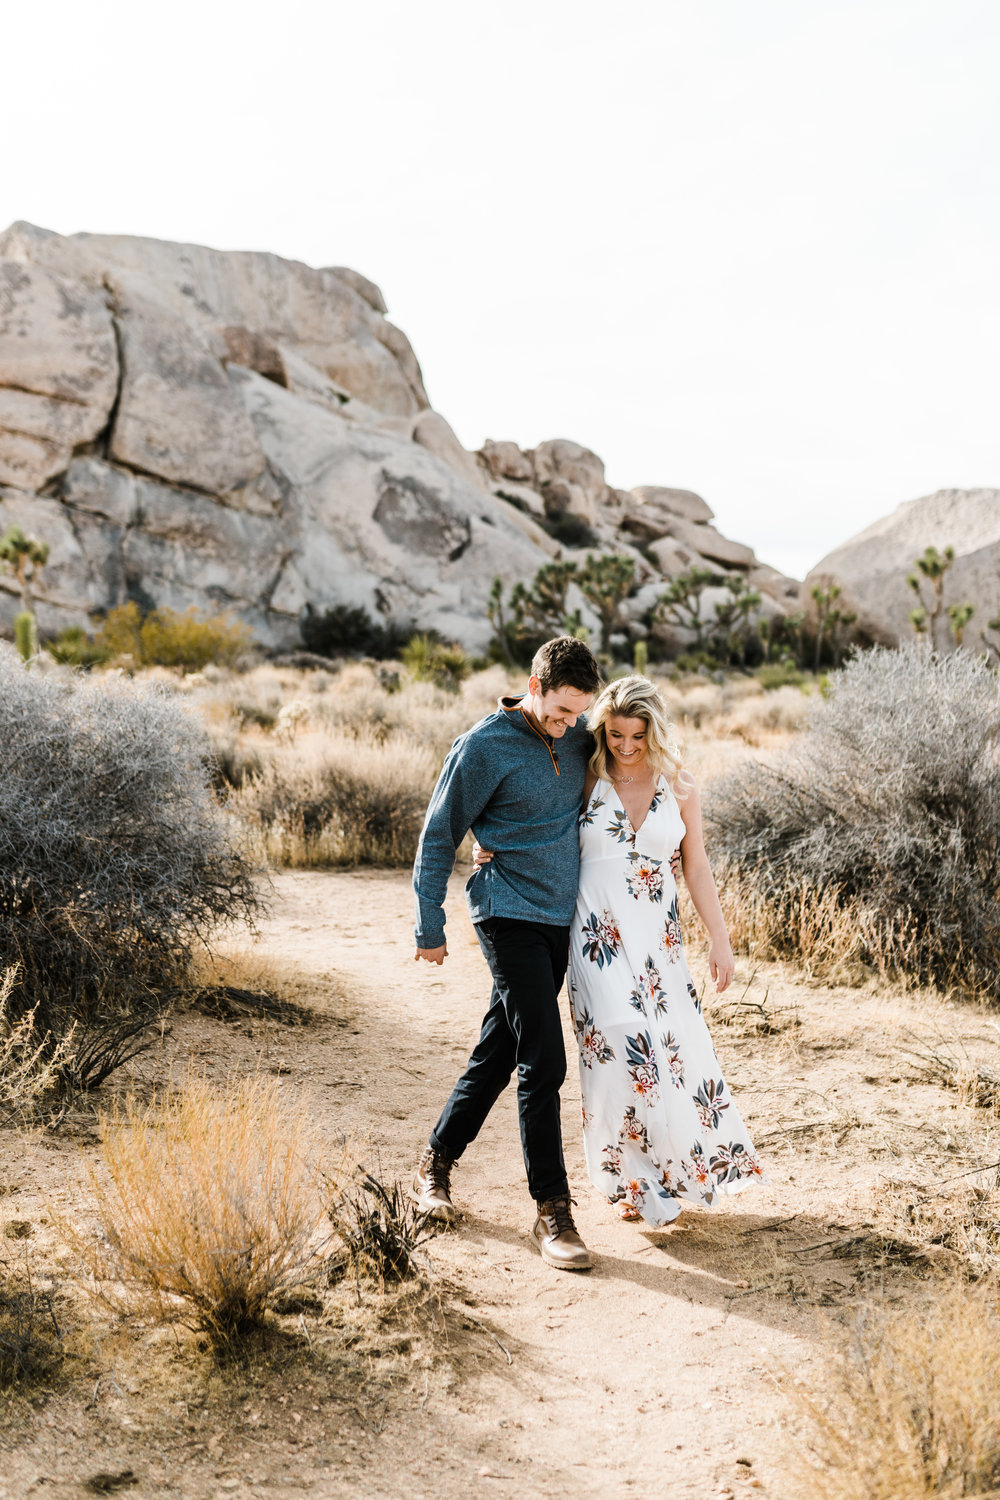 Dano&Andrew-Joshua-Tree-Engagement-Session-CRM-Media-Southern-California-Wedding-Photographer37